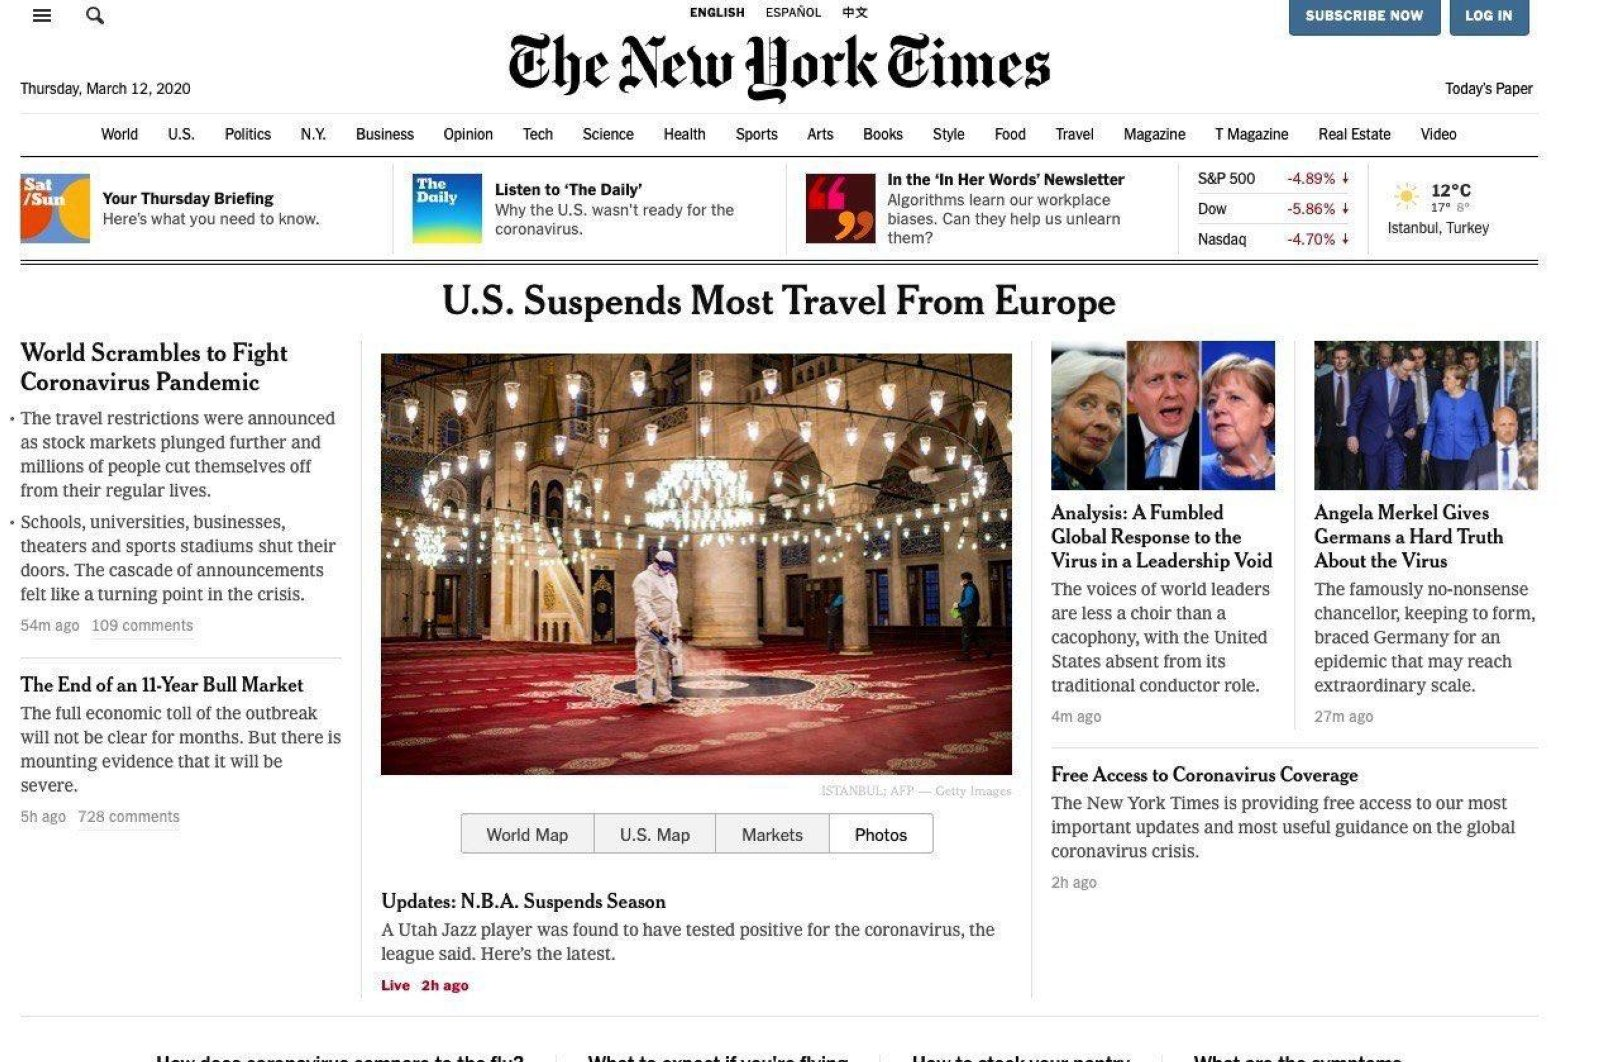 The New York Times uses photos of Turkey with coverage of U.S. travel restrictions on Europe, despite Turkey being exempted from the measures, March 11, 2020.